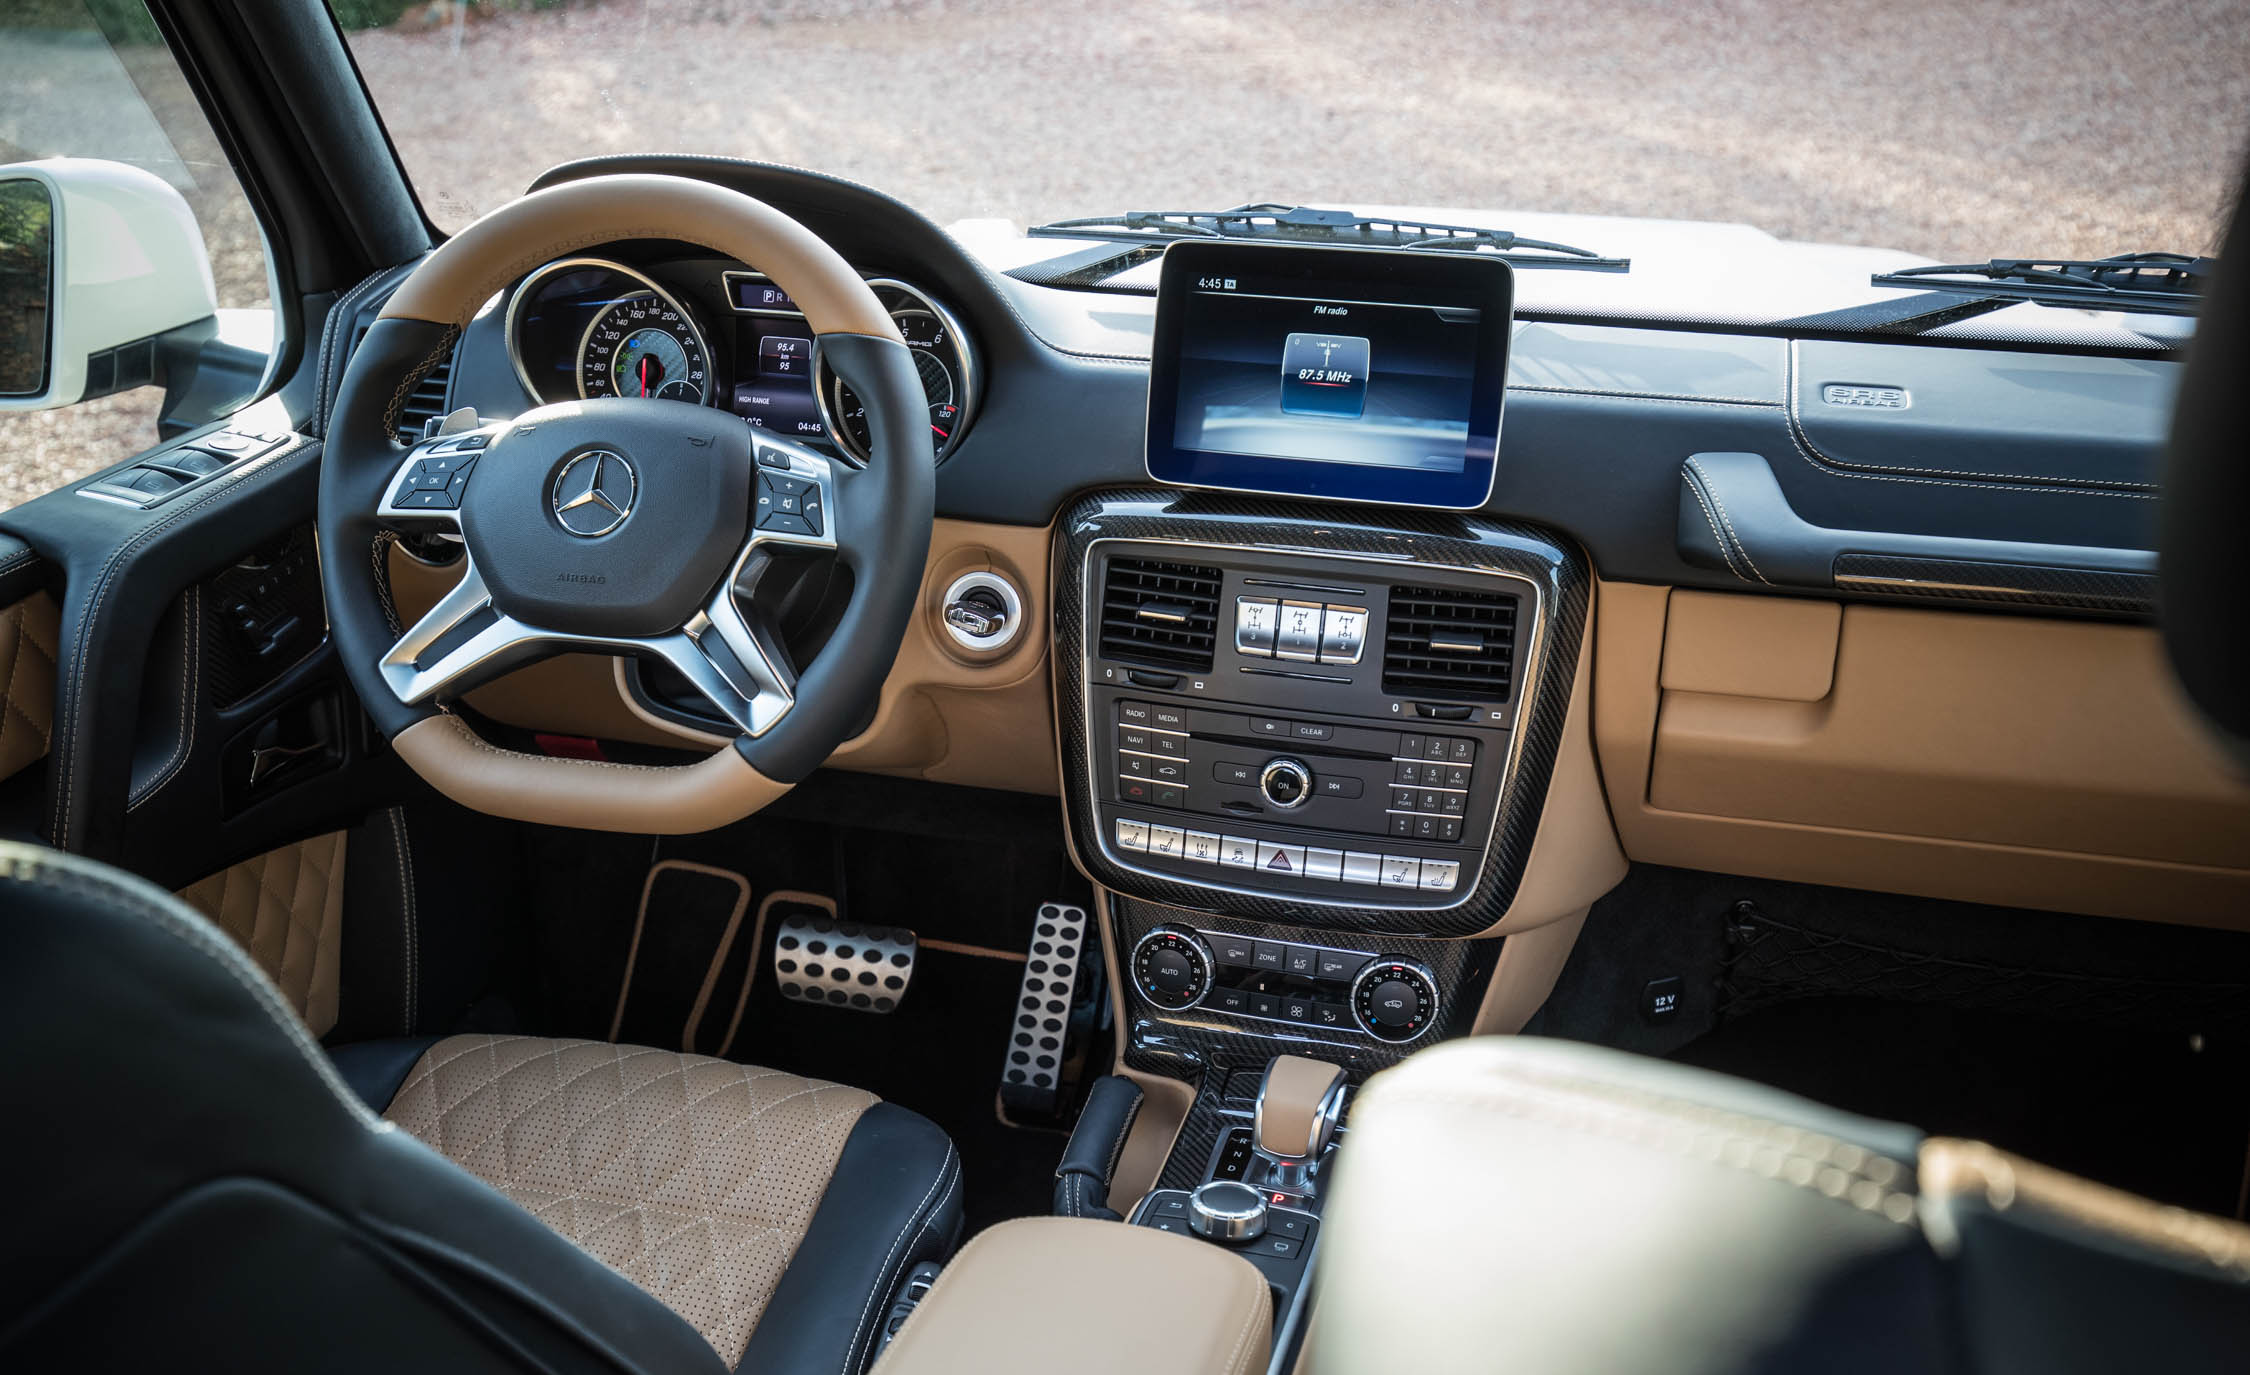 2018 Mercedes Maybach G650 Landaulet Interior Cockpit Steering And Dashboard (Photo 39 of 52)